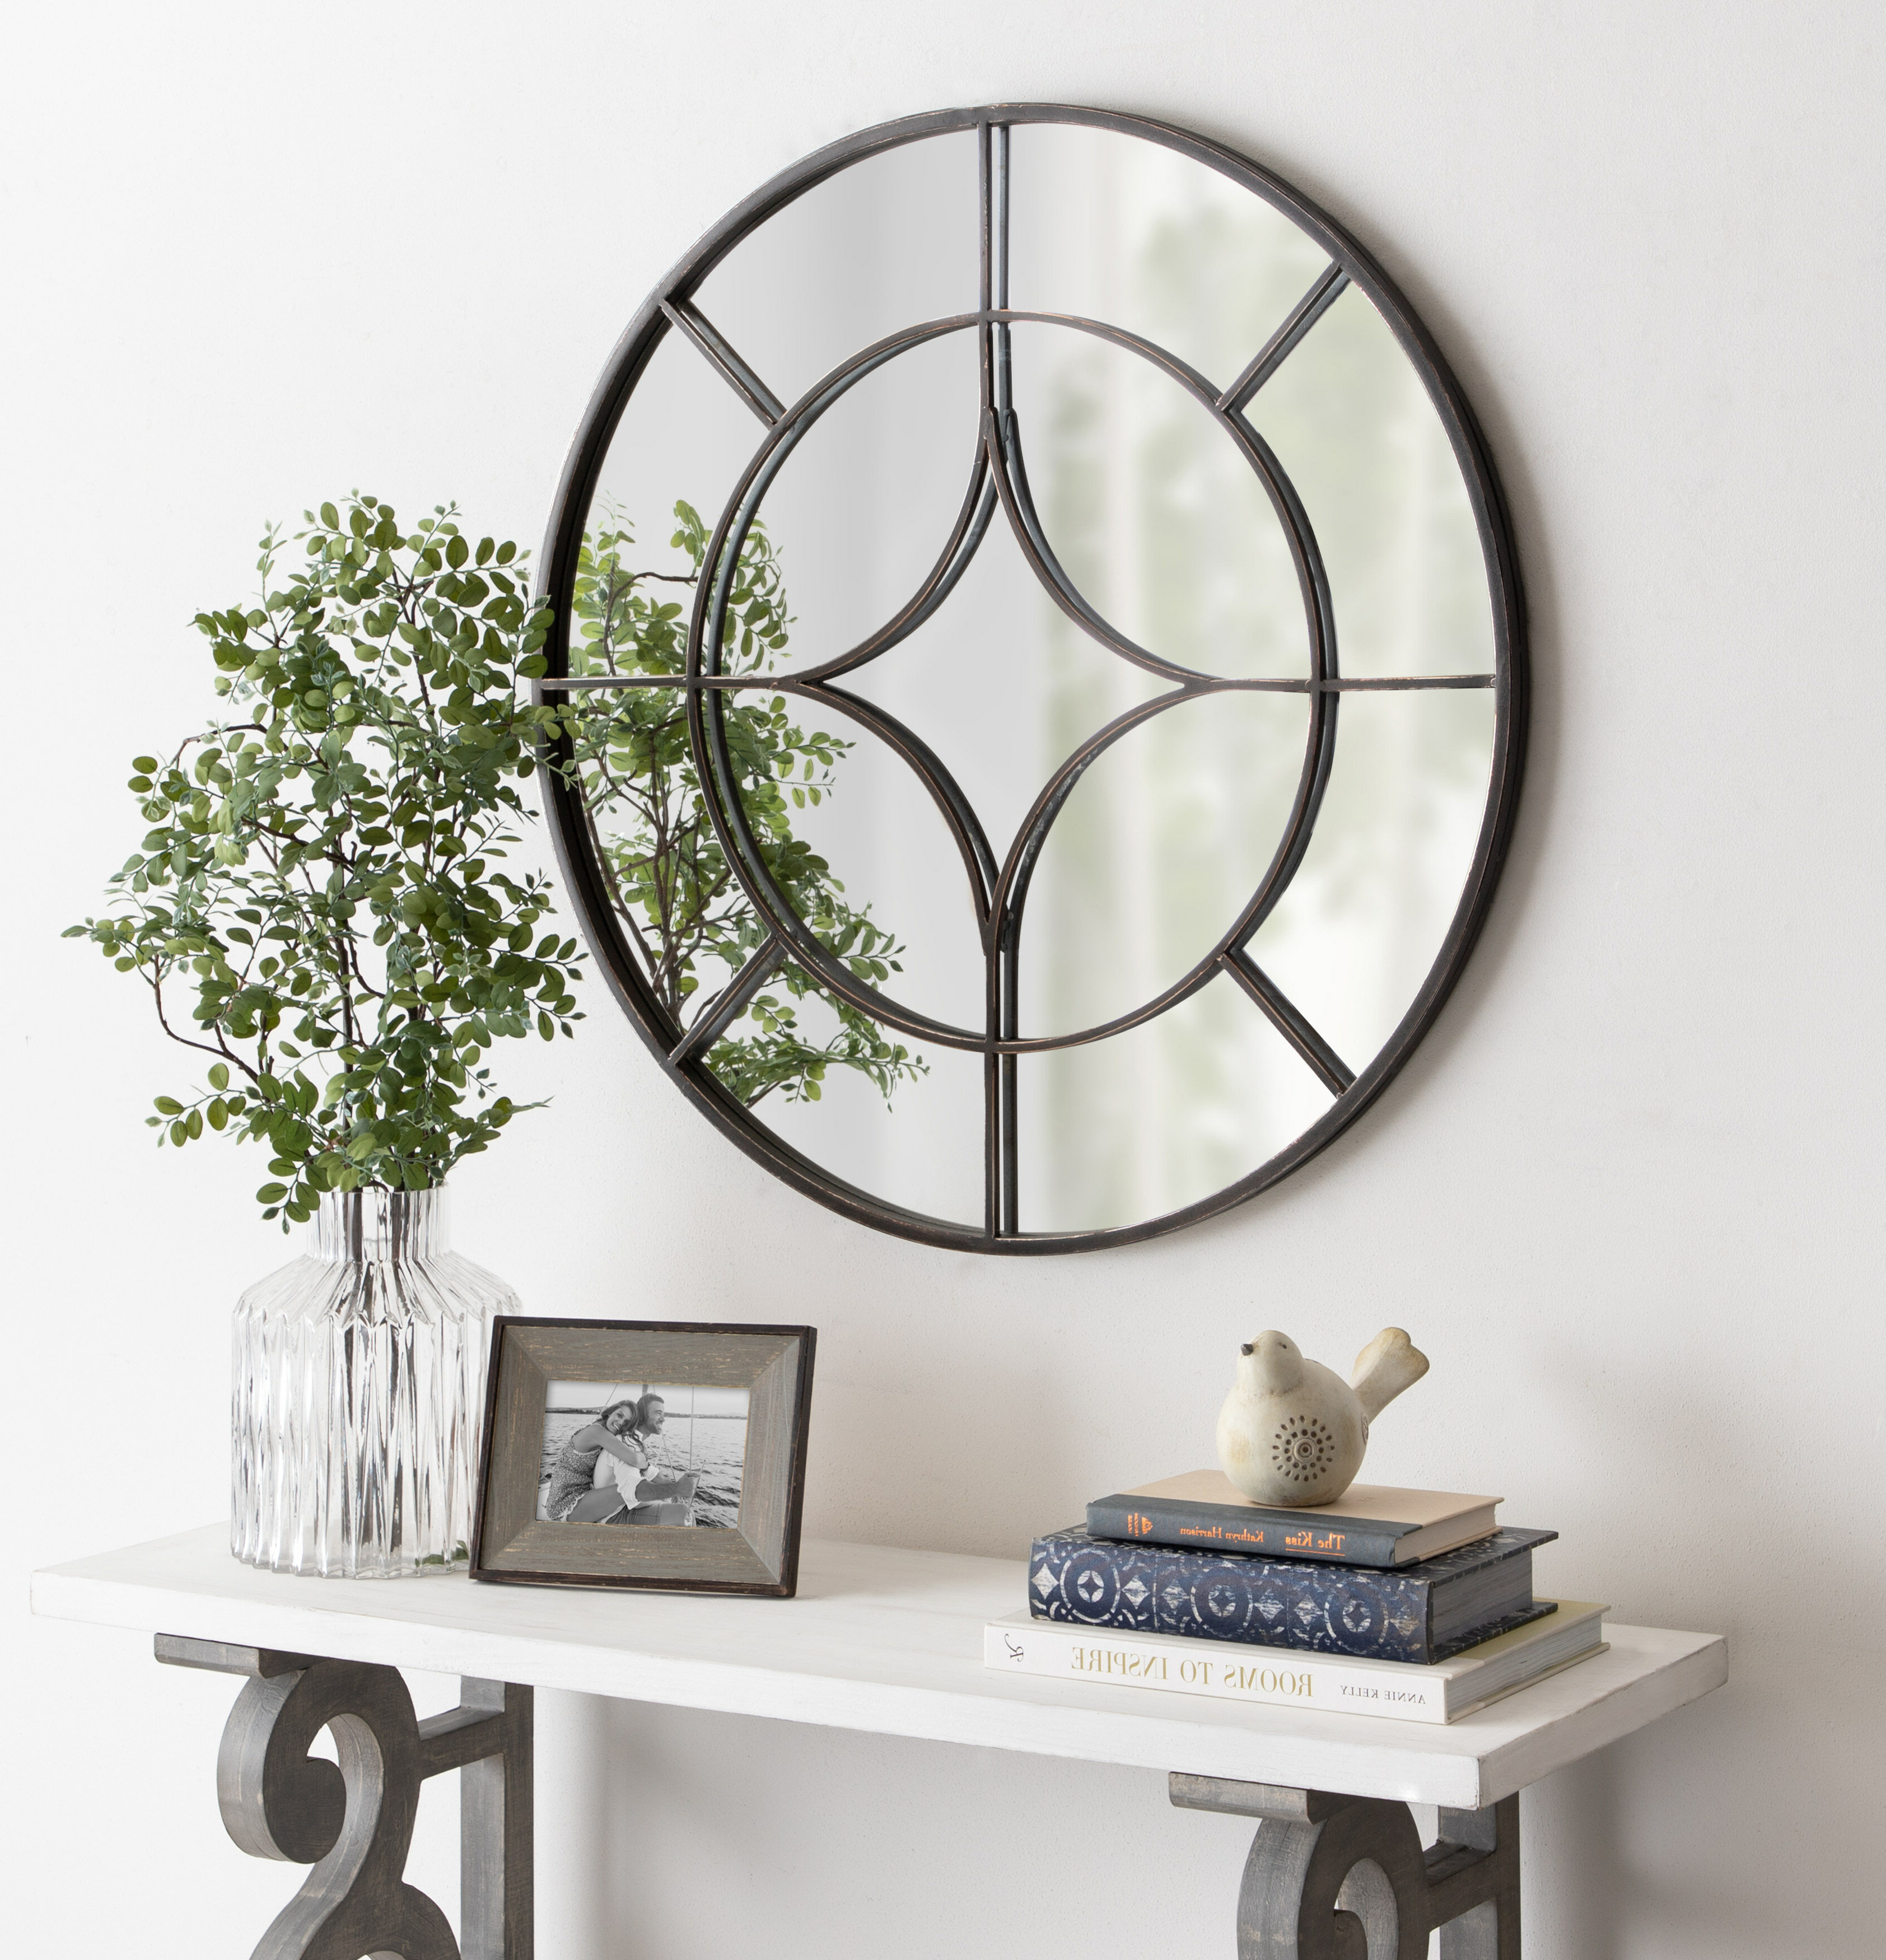 Koeller Industrial Metal Wall Mirrors Within Most Up To Date Hanska Industrial Modern Overlaid Beveled Frameless Accent Mirror (View 14 of 20)